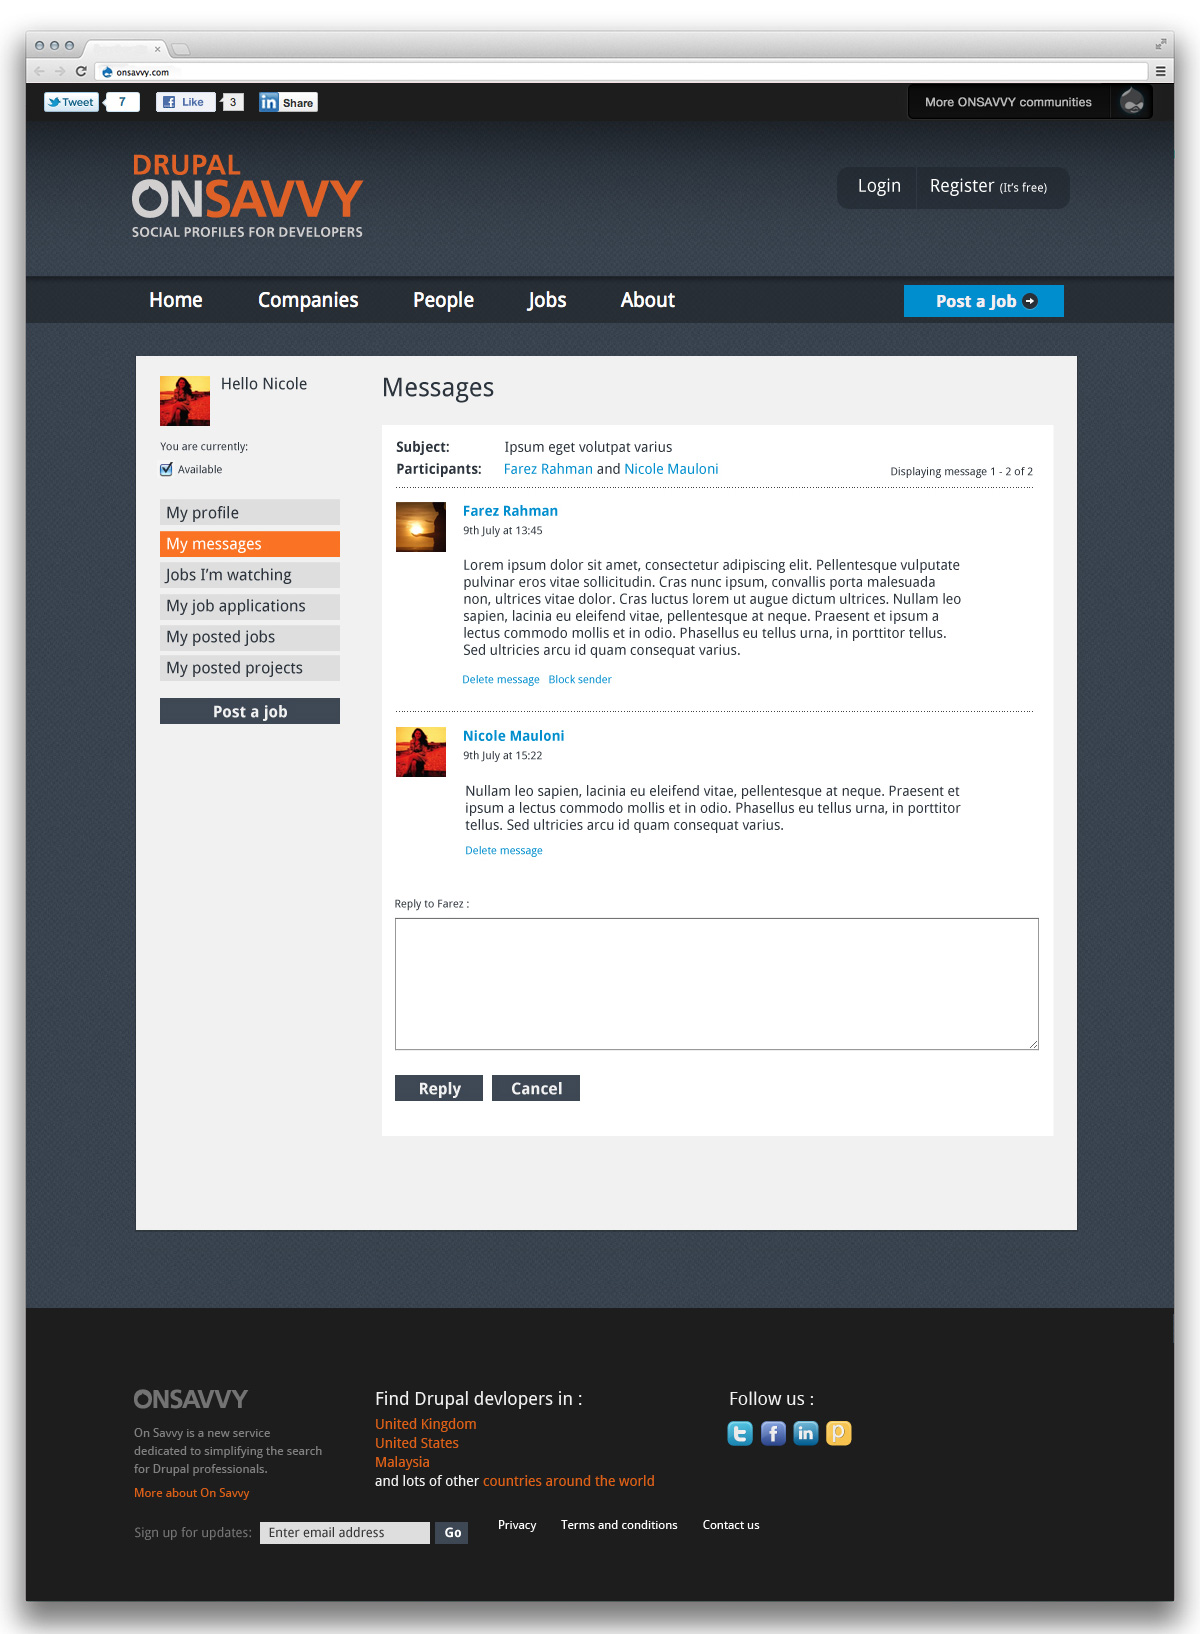 Drupal on Savvy messages page